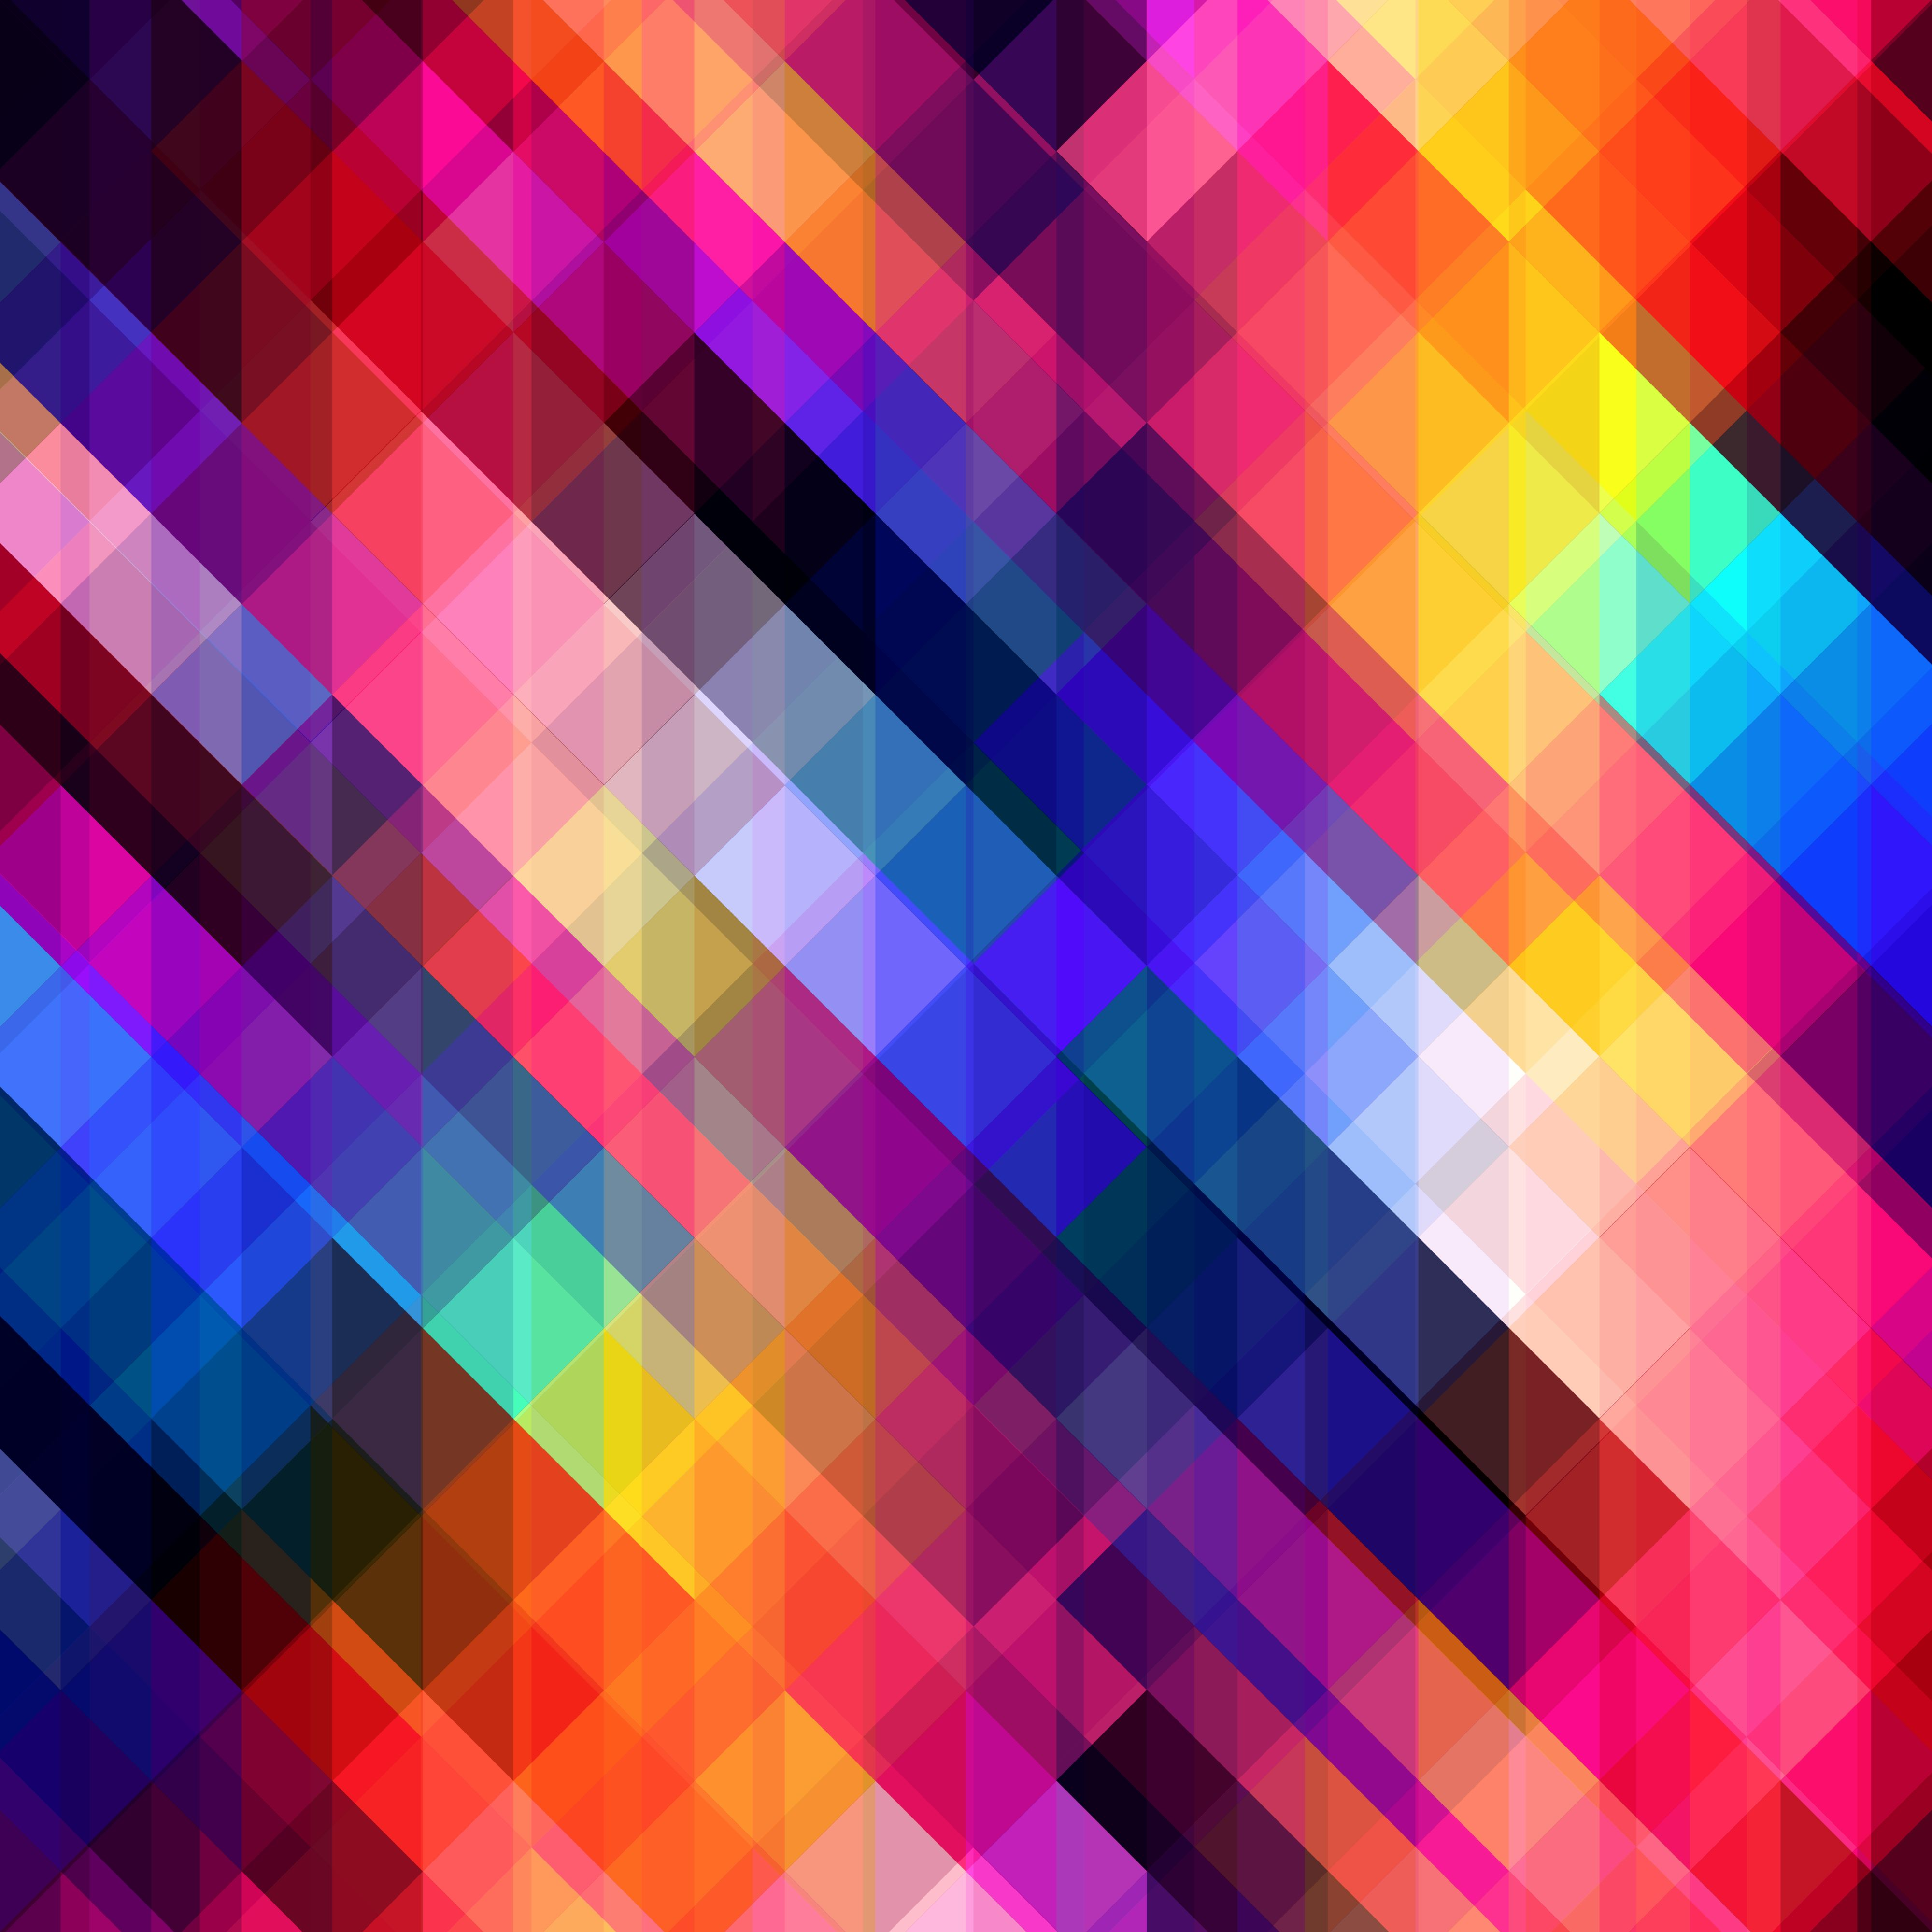 86182 download wallpaper Multicolored, Motley, Texture, Textures, Stripes, Streaks, Obliquely, Cuba screensavers and pictures for free